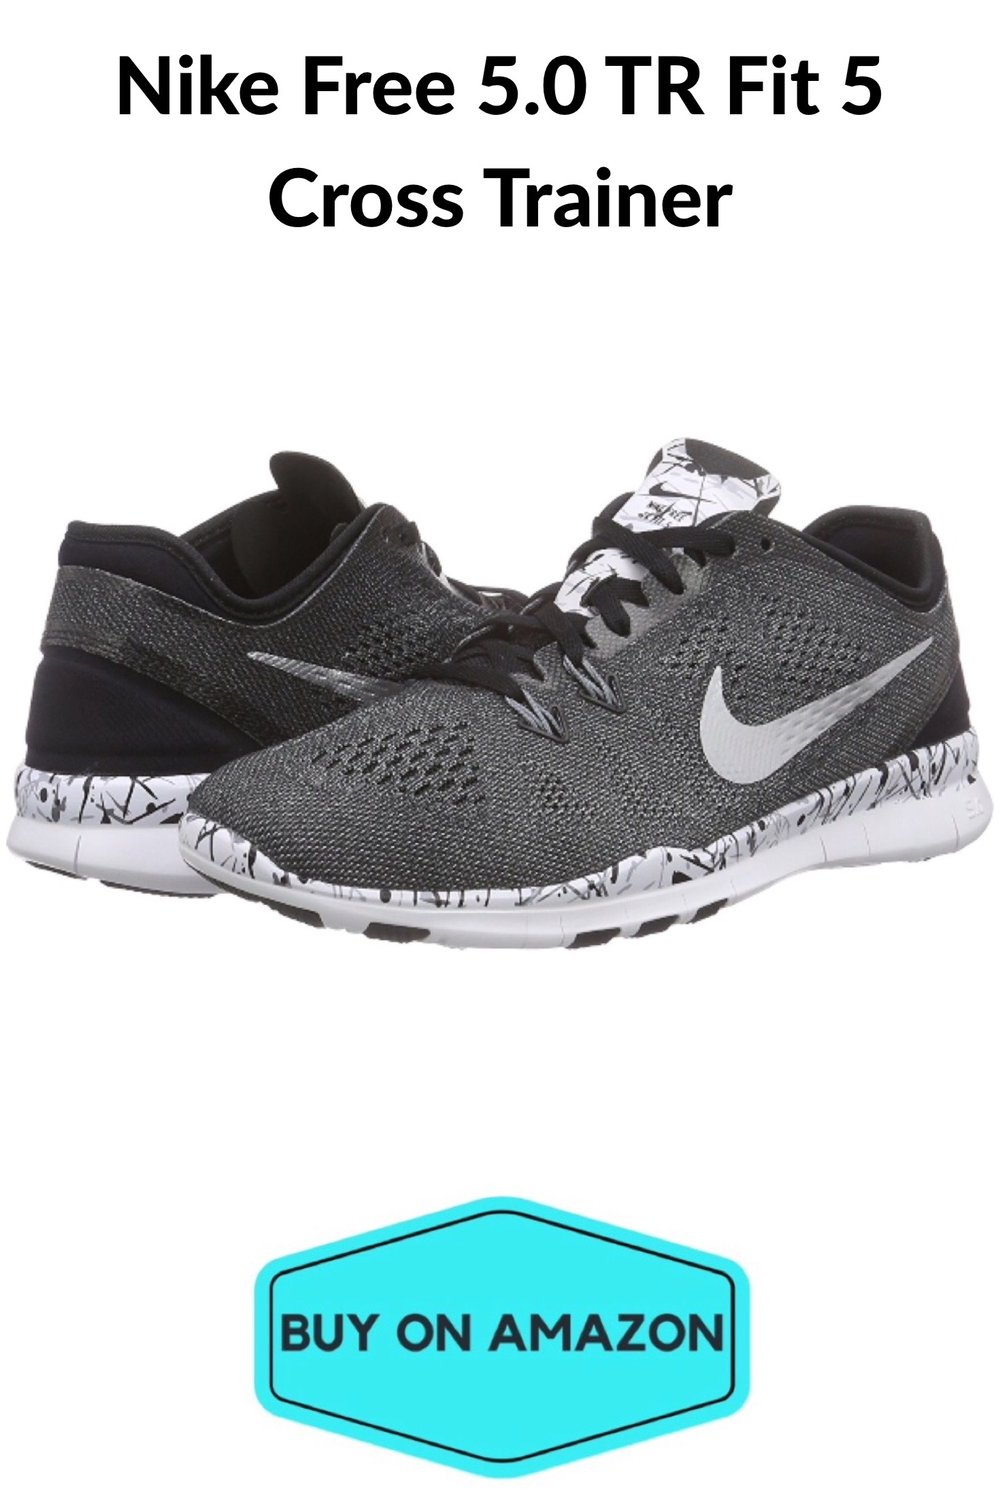 Nike Free 5.0 TR Fit 5 Women's Cross Trainer